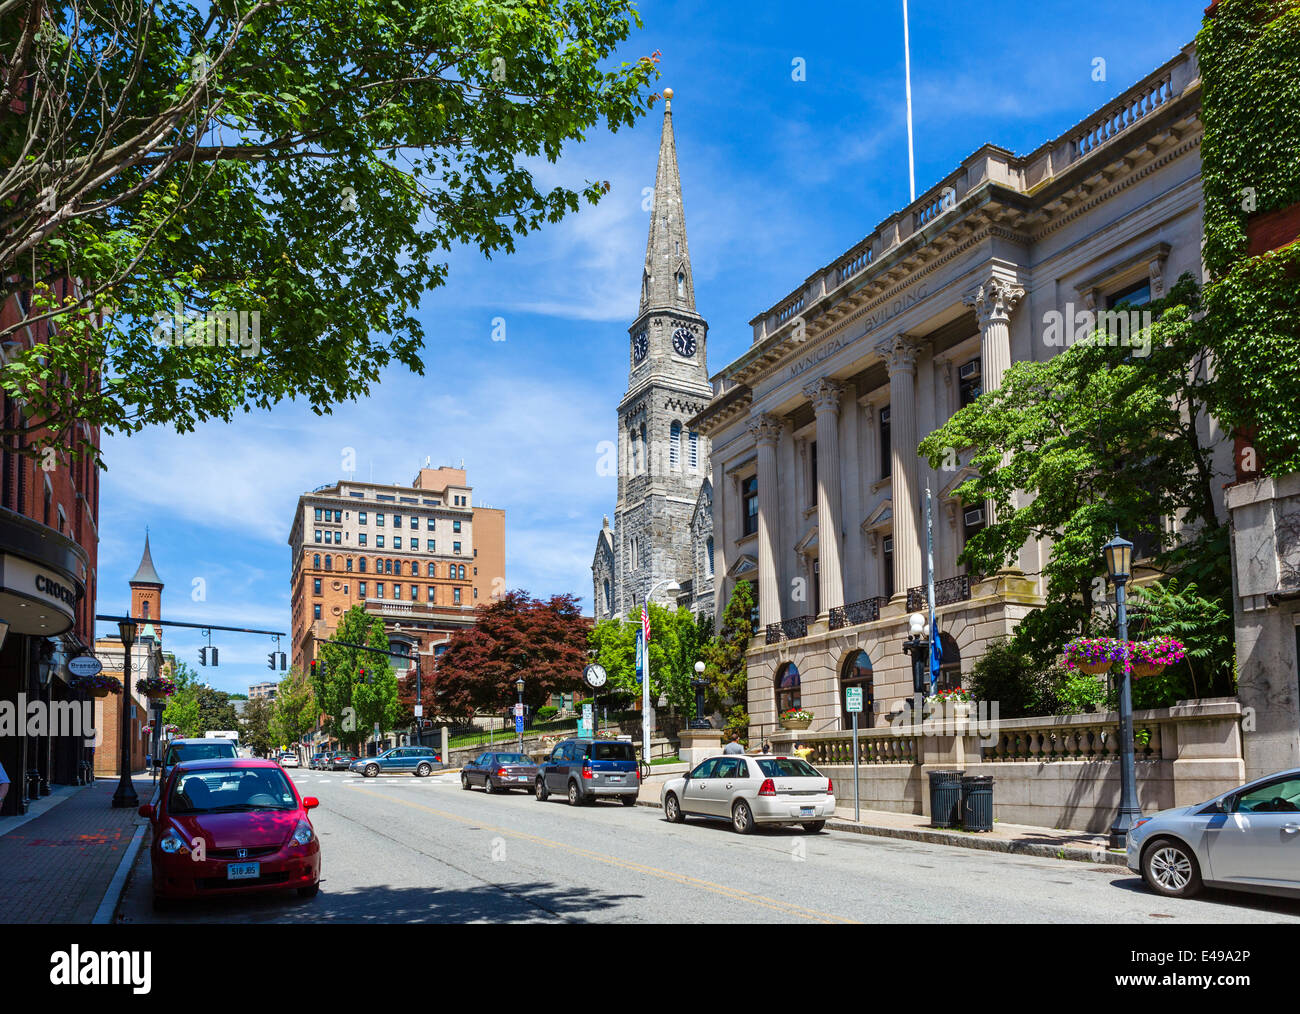 State Street in downtown New London, Connecticut, USA - Stock Image